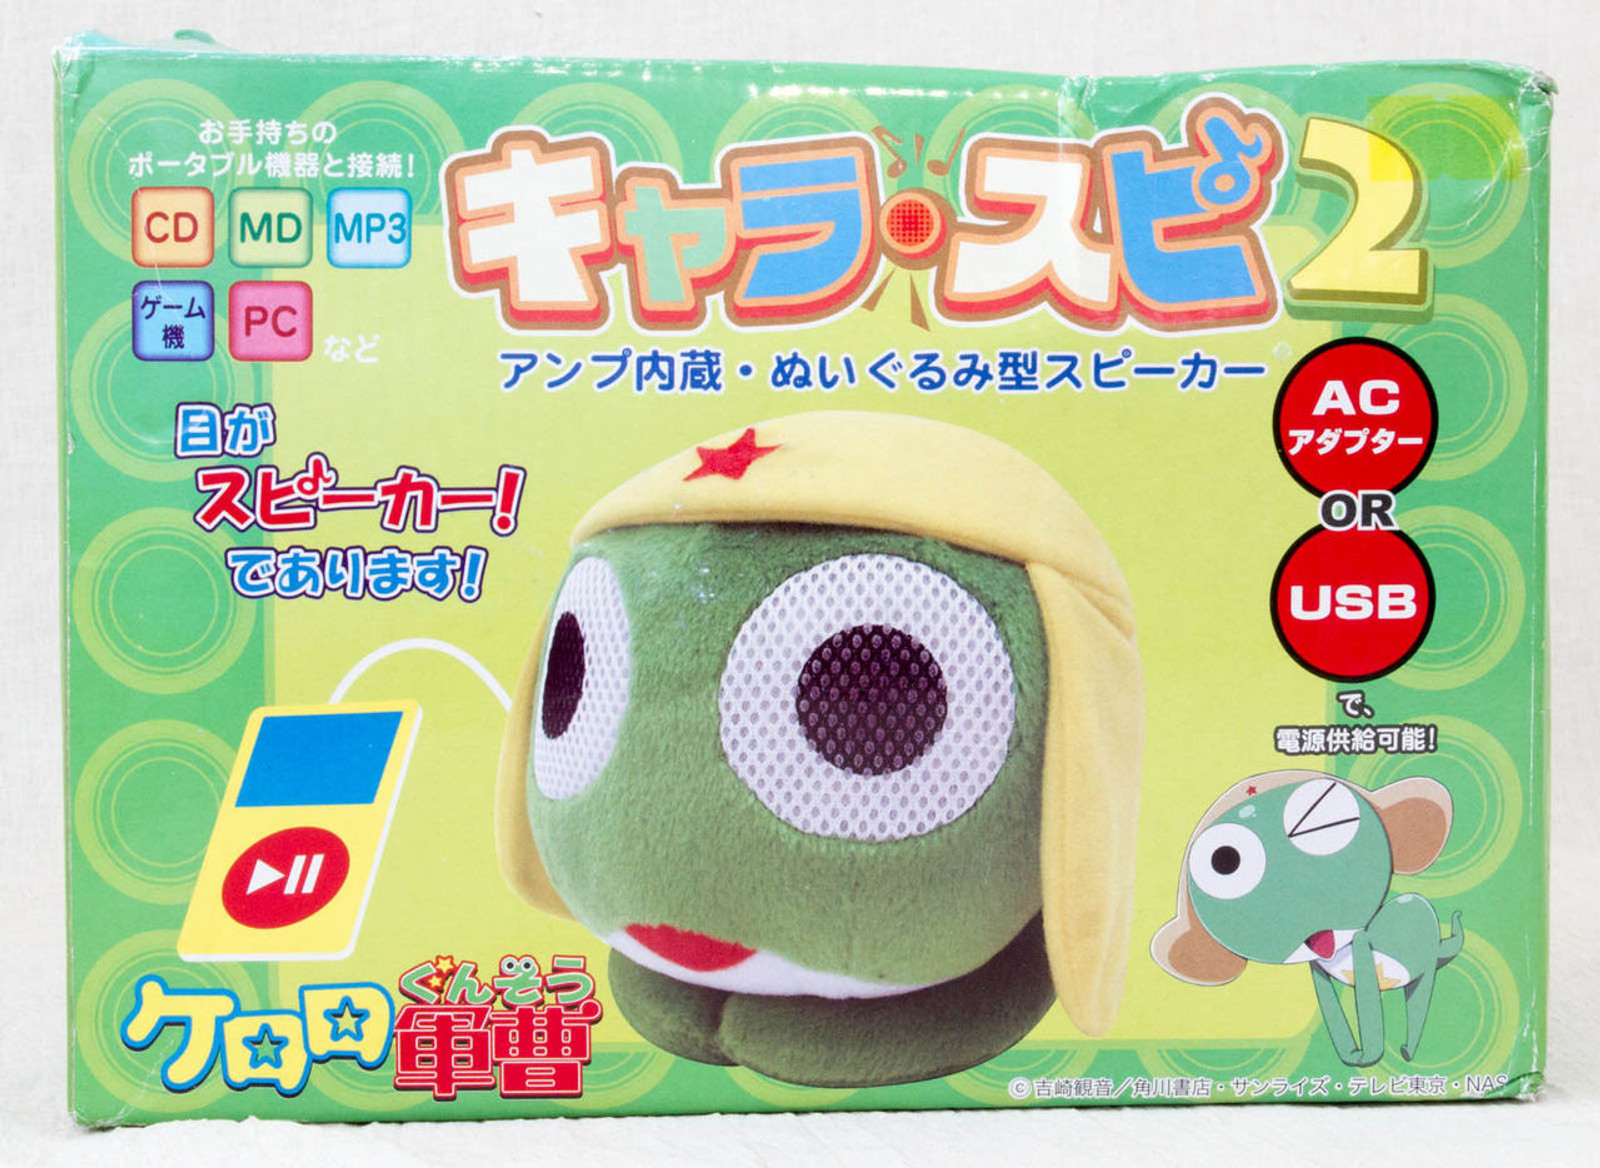 Sgt. Frog Keroro Gunso Plush Doll Character Stereo Speaker AC/USB Powered Popy JAPAN ANIME